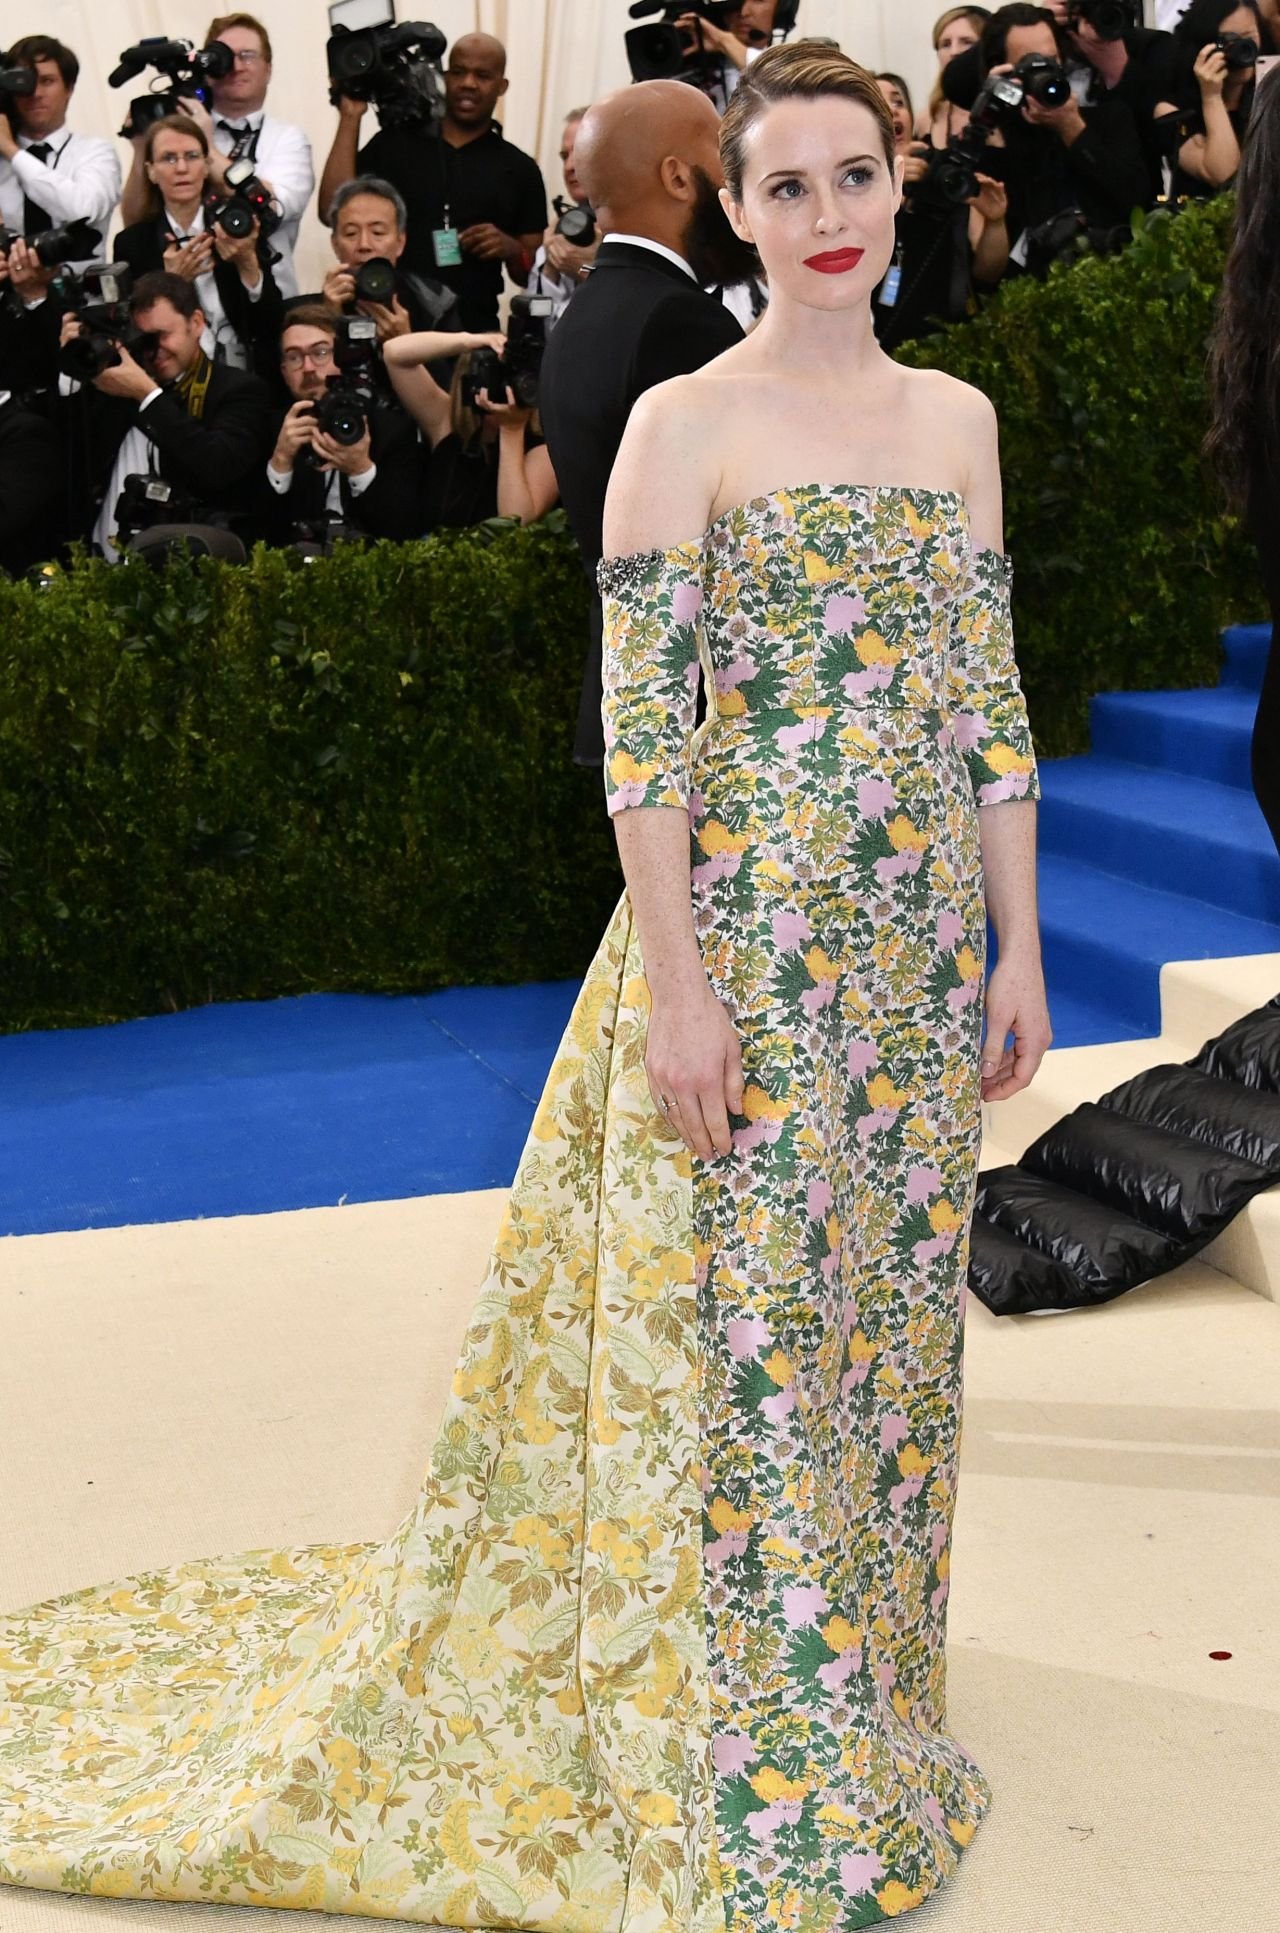 Claire Foy At Met Gala In New York 05 01 2017